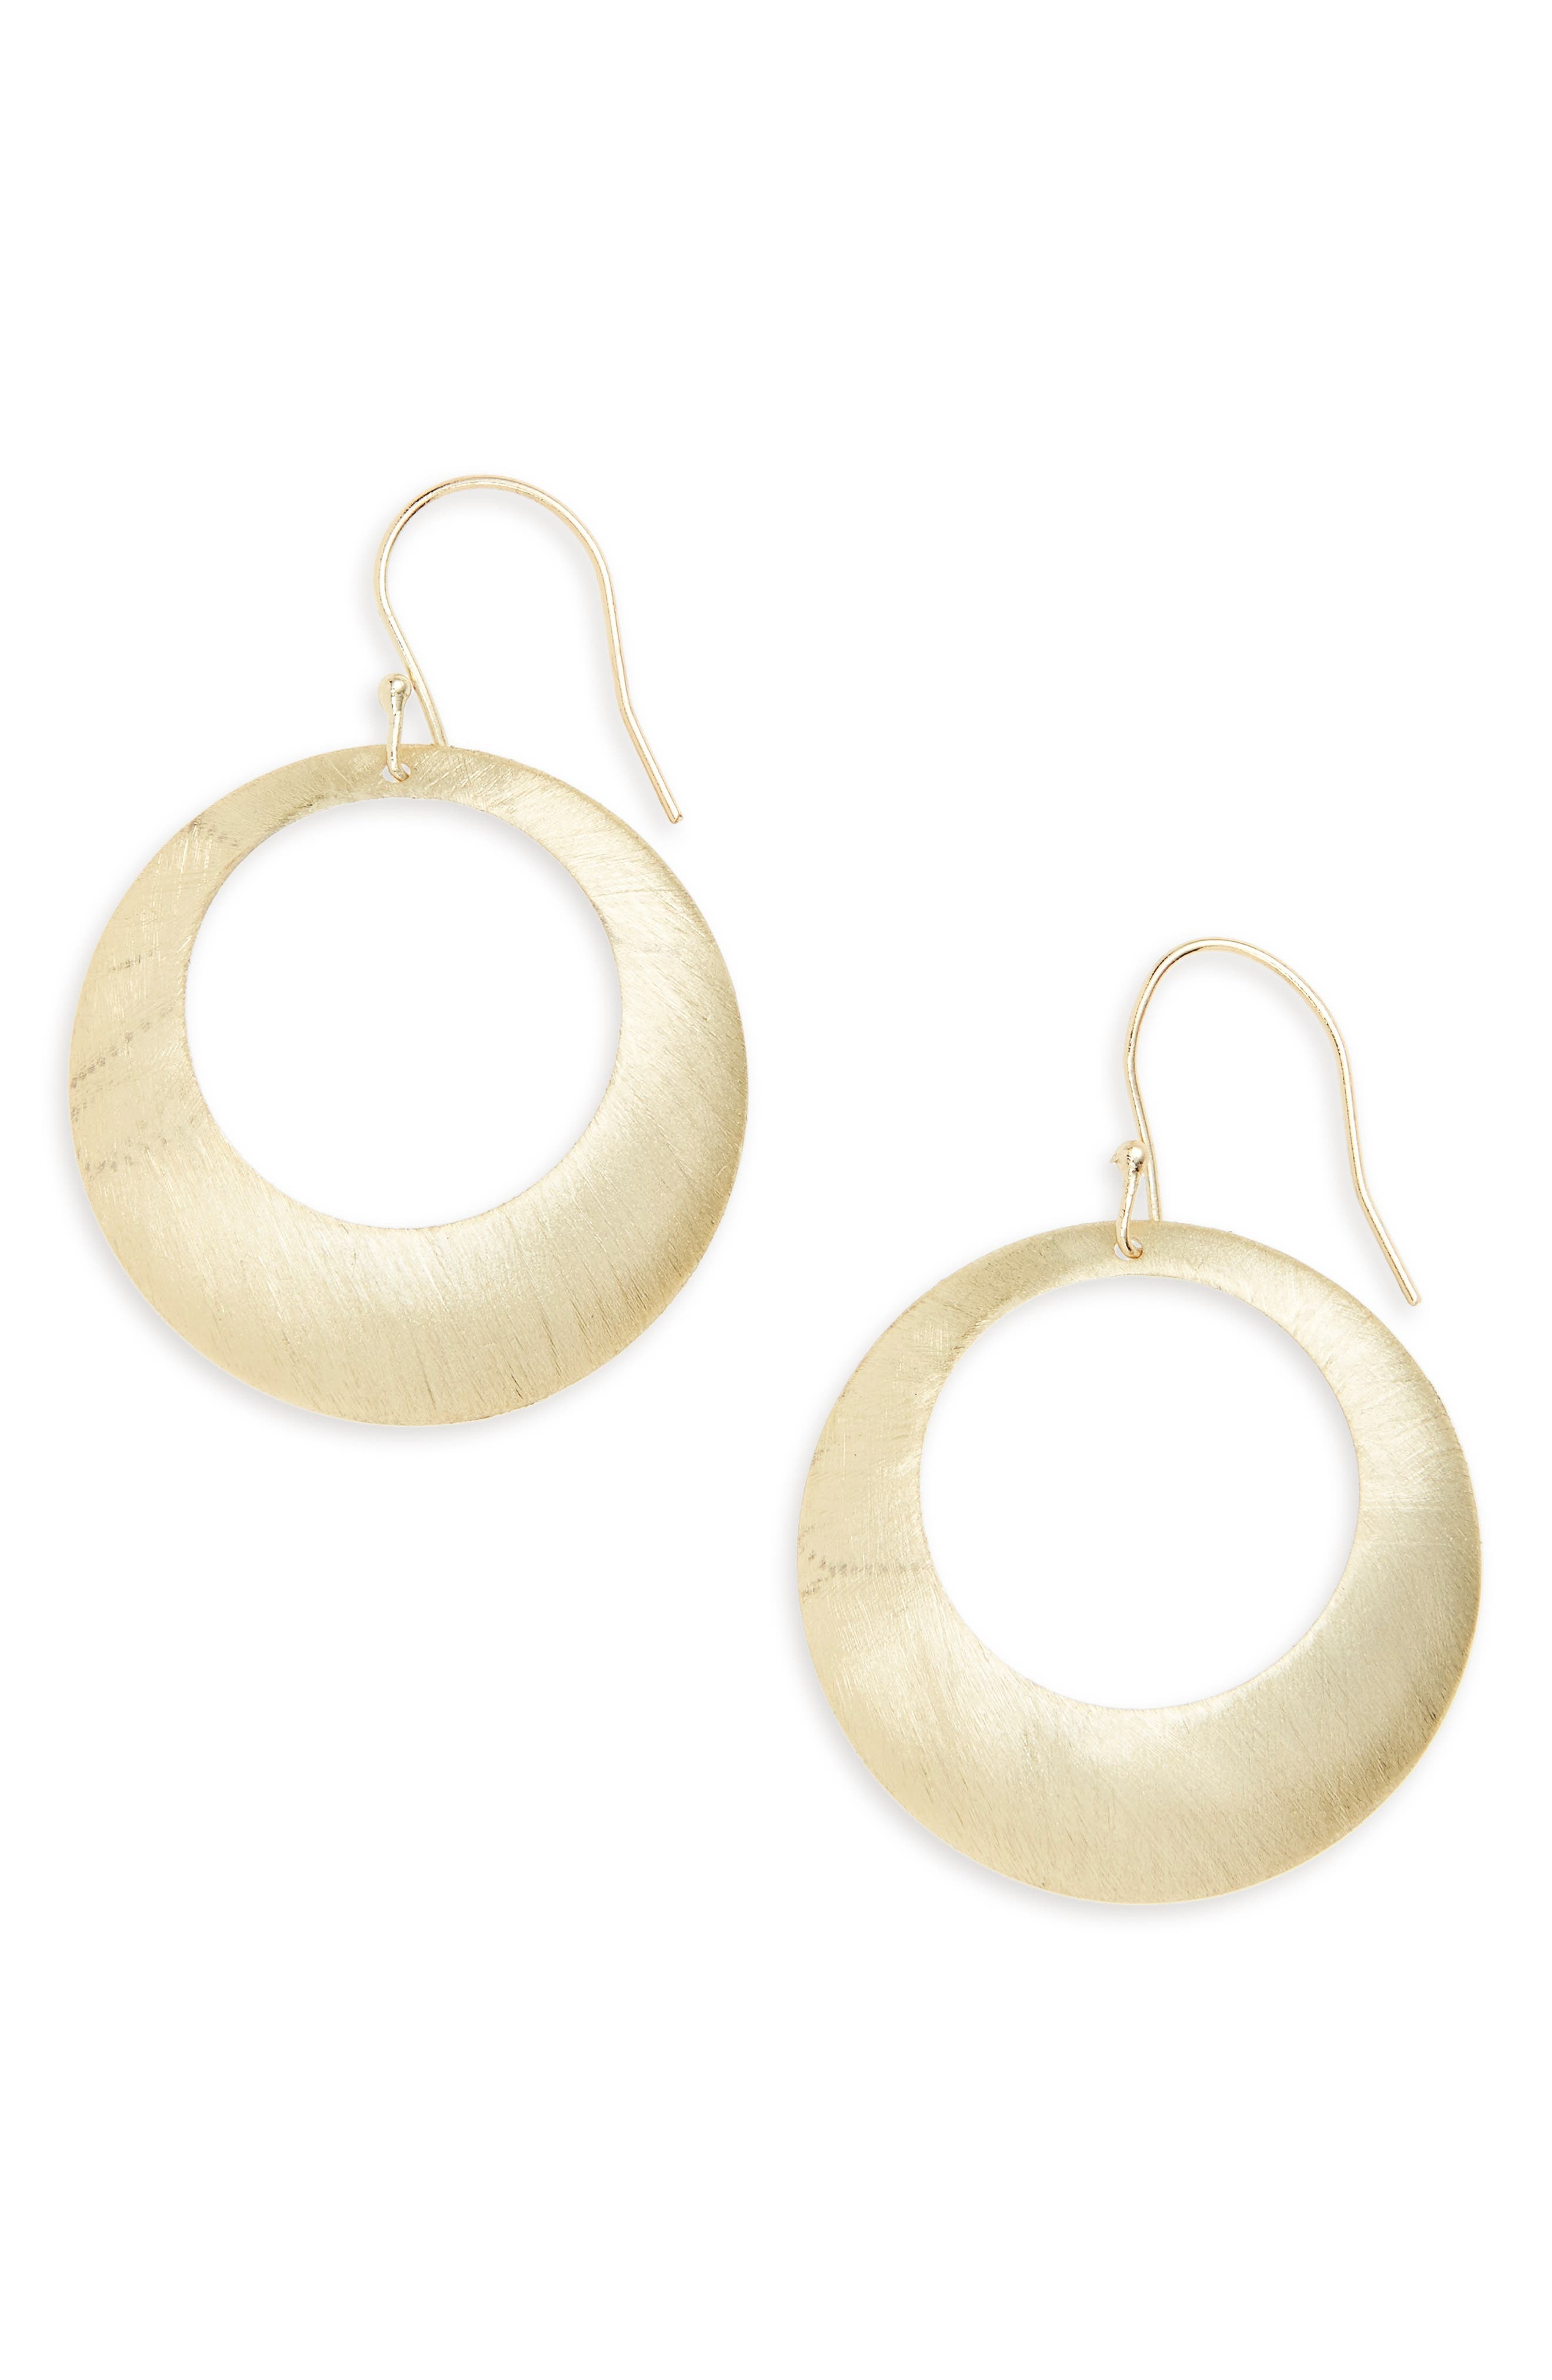 Brushed Circle Earrings,                         Main,                         color, Gold